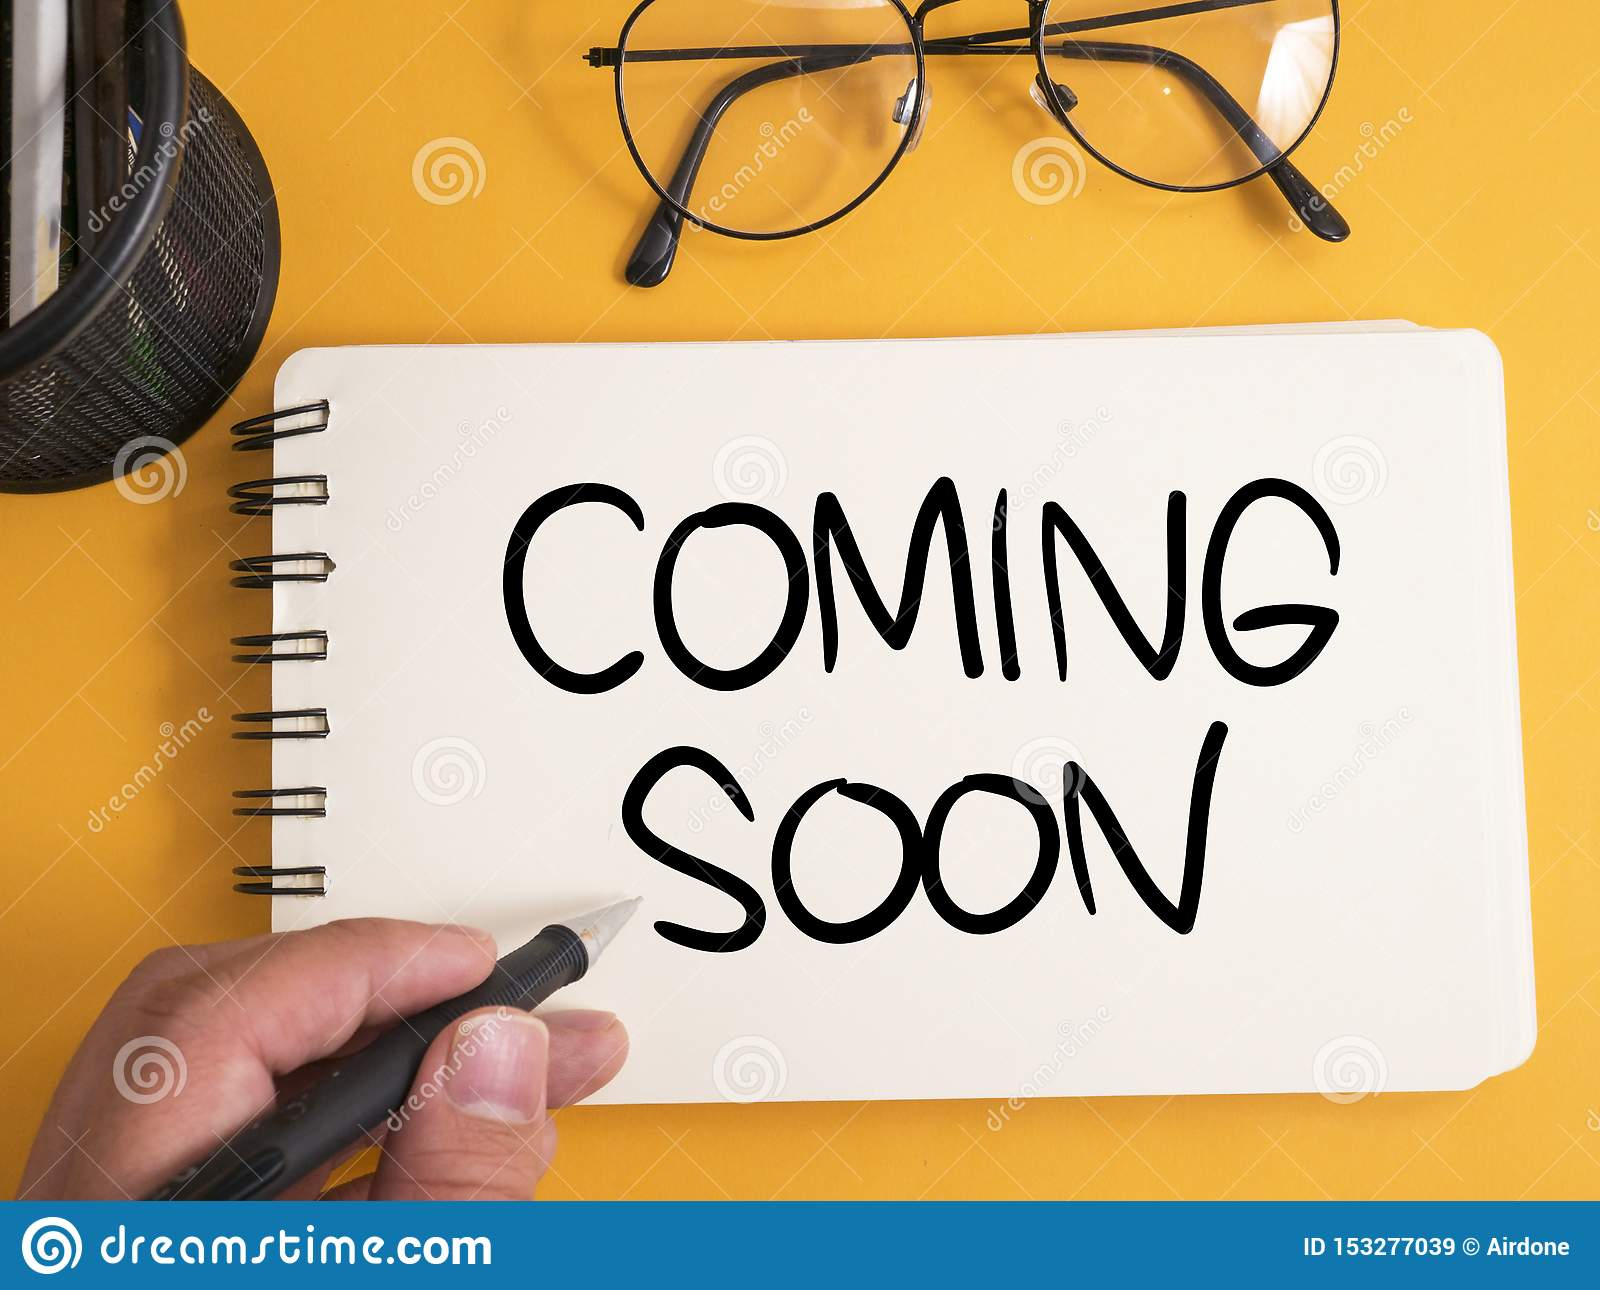 Coming Soon Words Typography Concept Stock Image Image Of Coming Promote 153277039